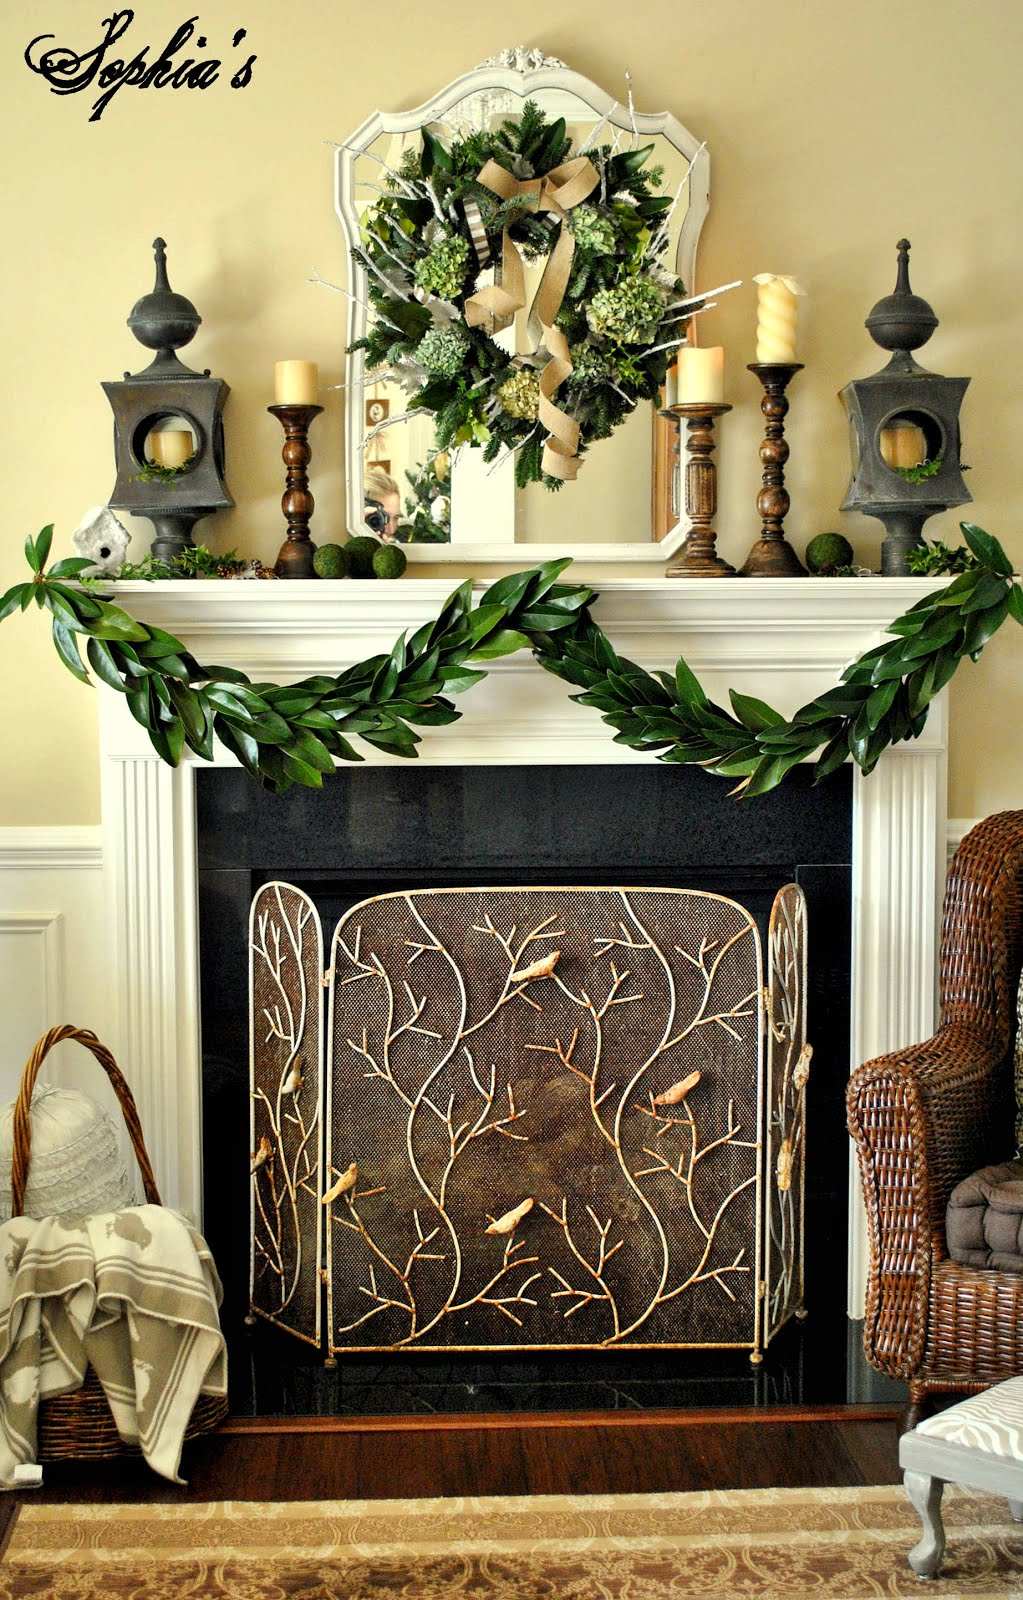 Garden-Inspired Christmas Mantel